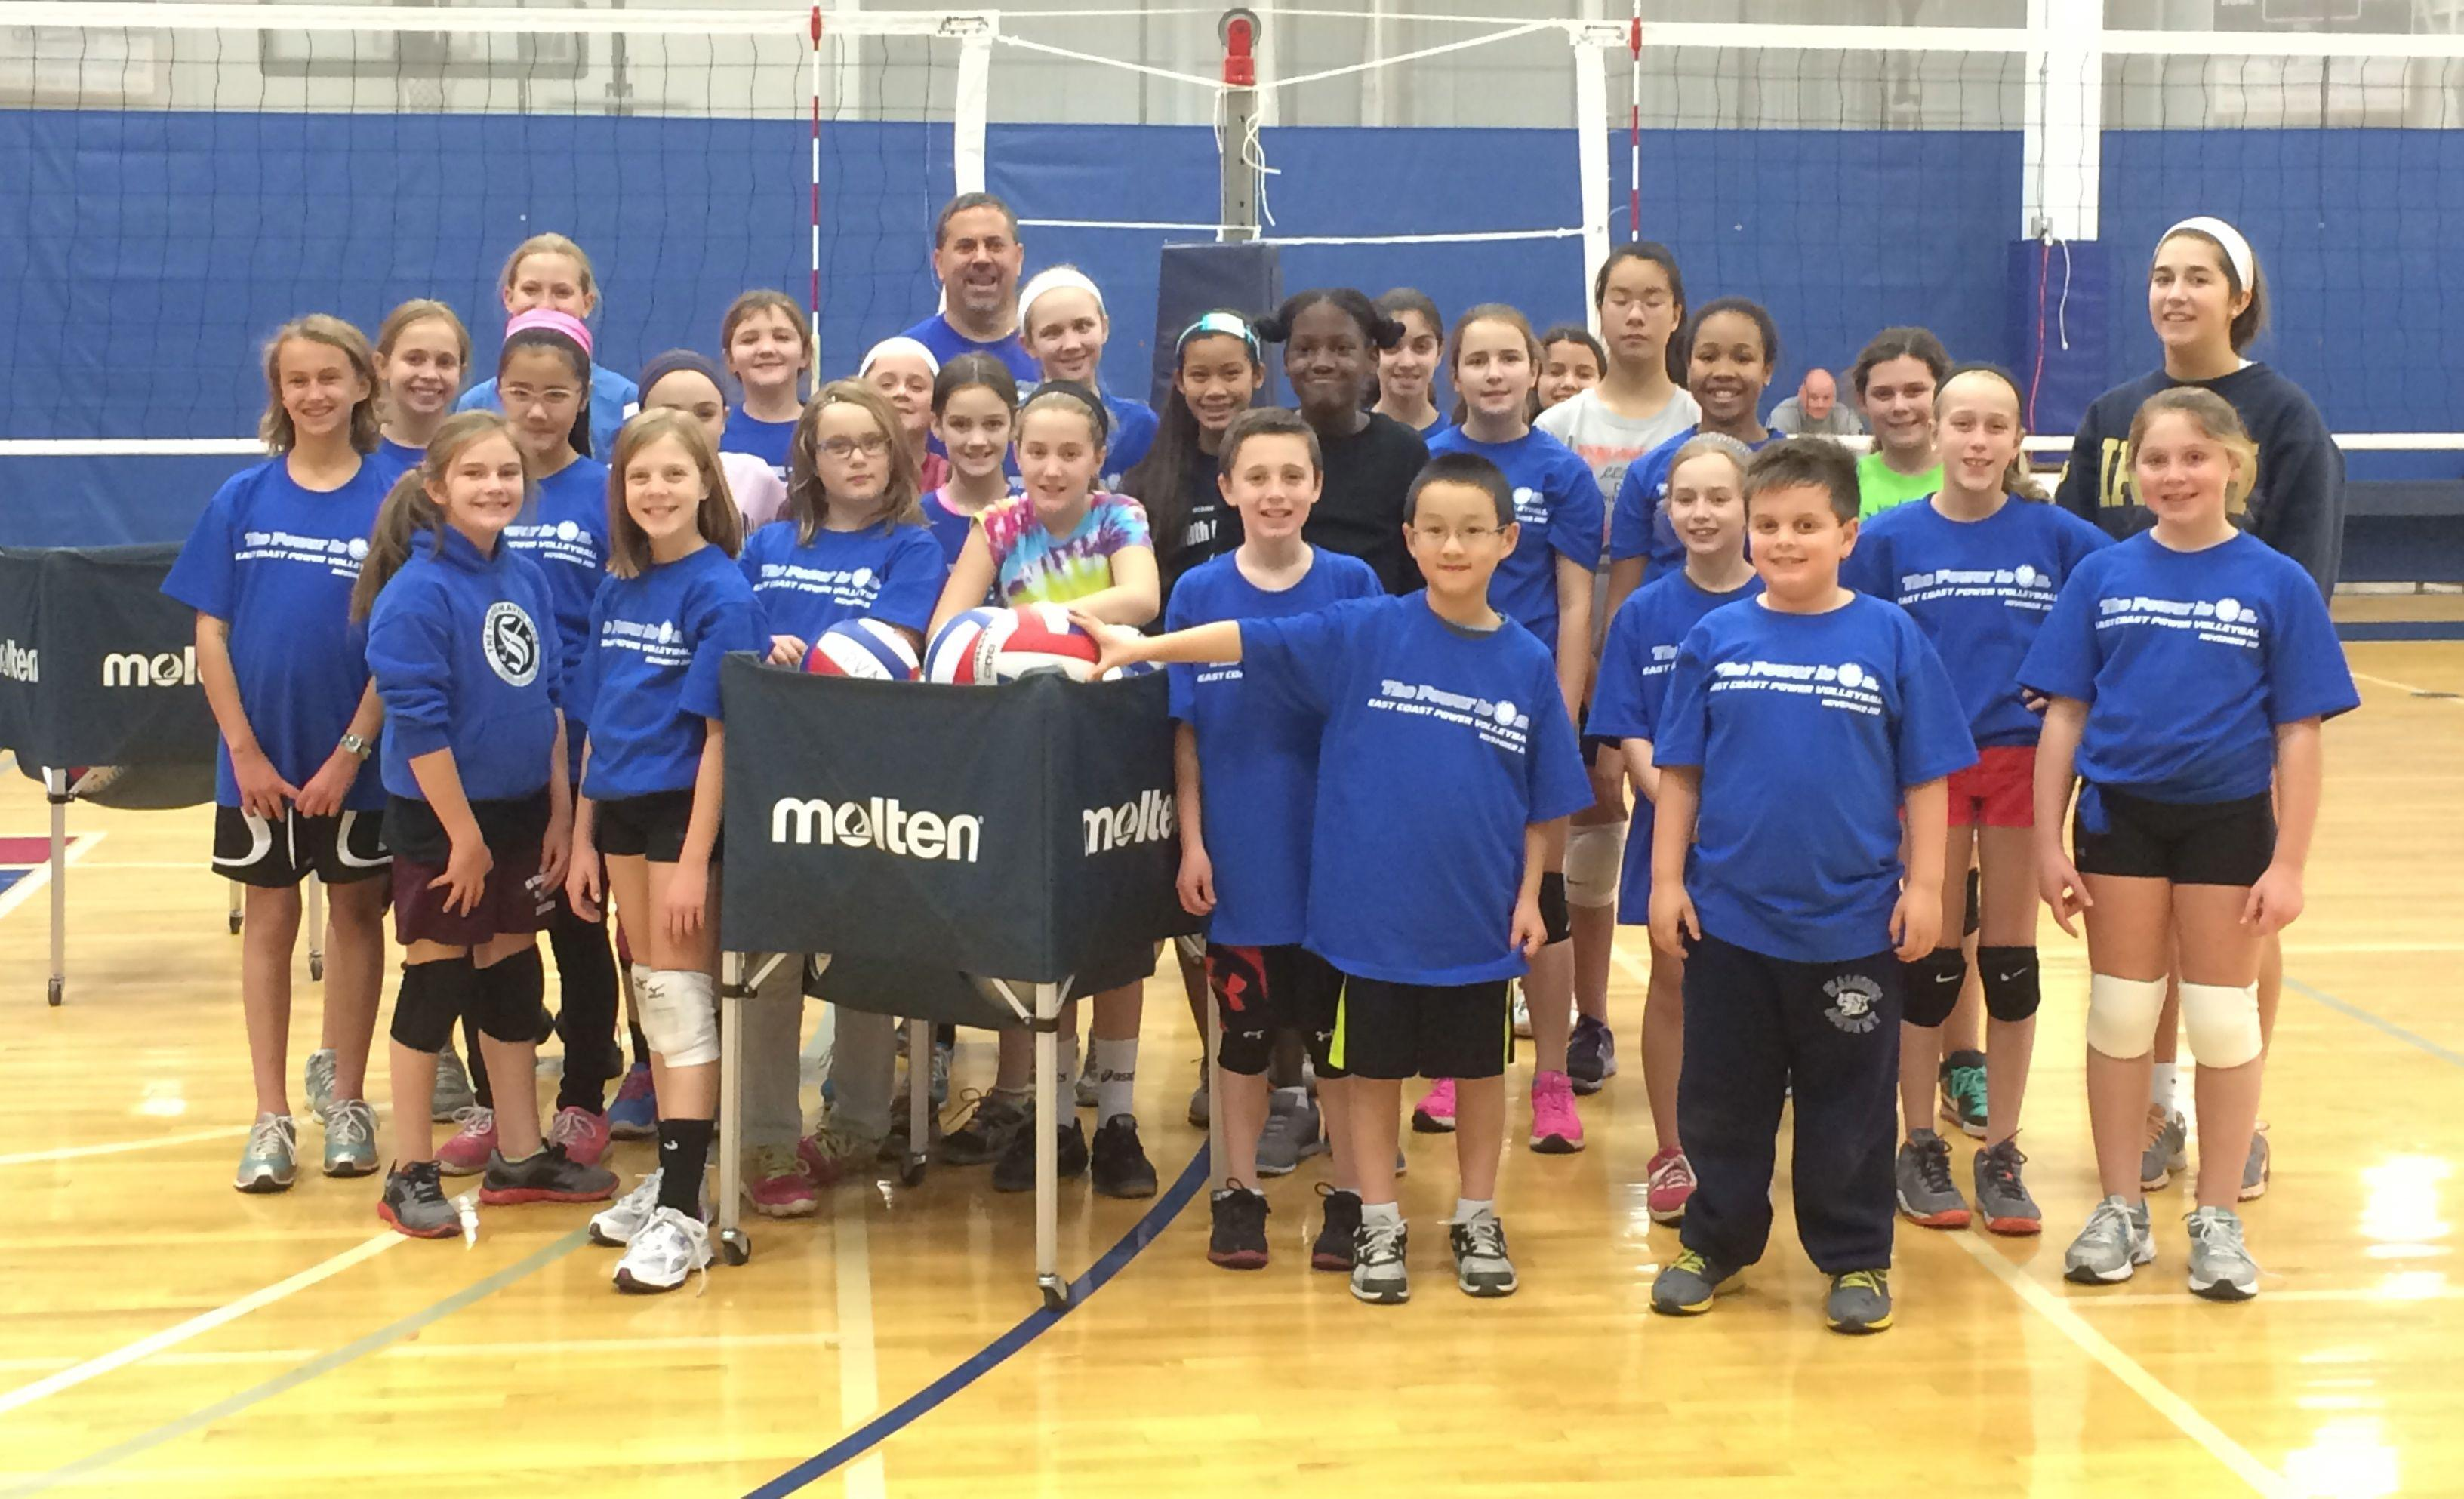 East Coast Power Volleyball Welcomes 100 New Junior And Performance Players